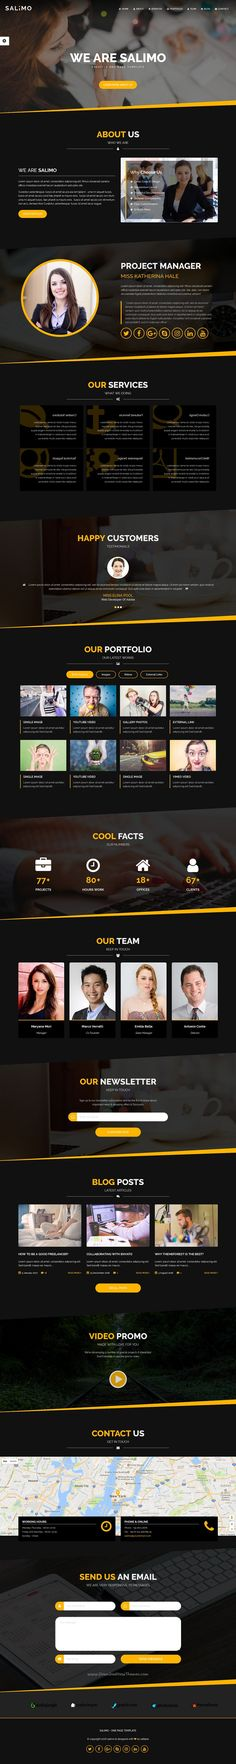 Web Universal, Site © Николай Скоробогатько Web design Pinterest